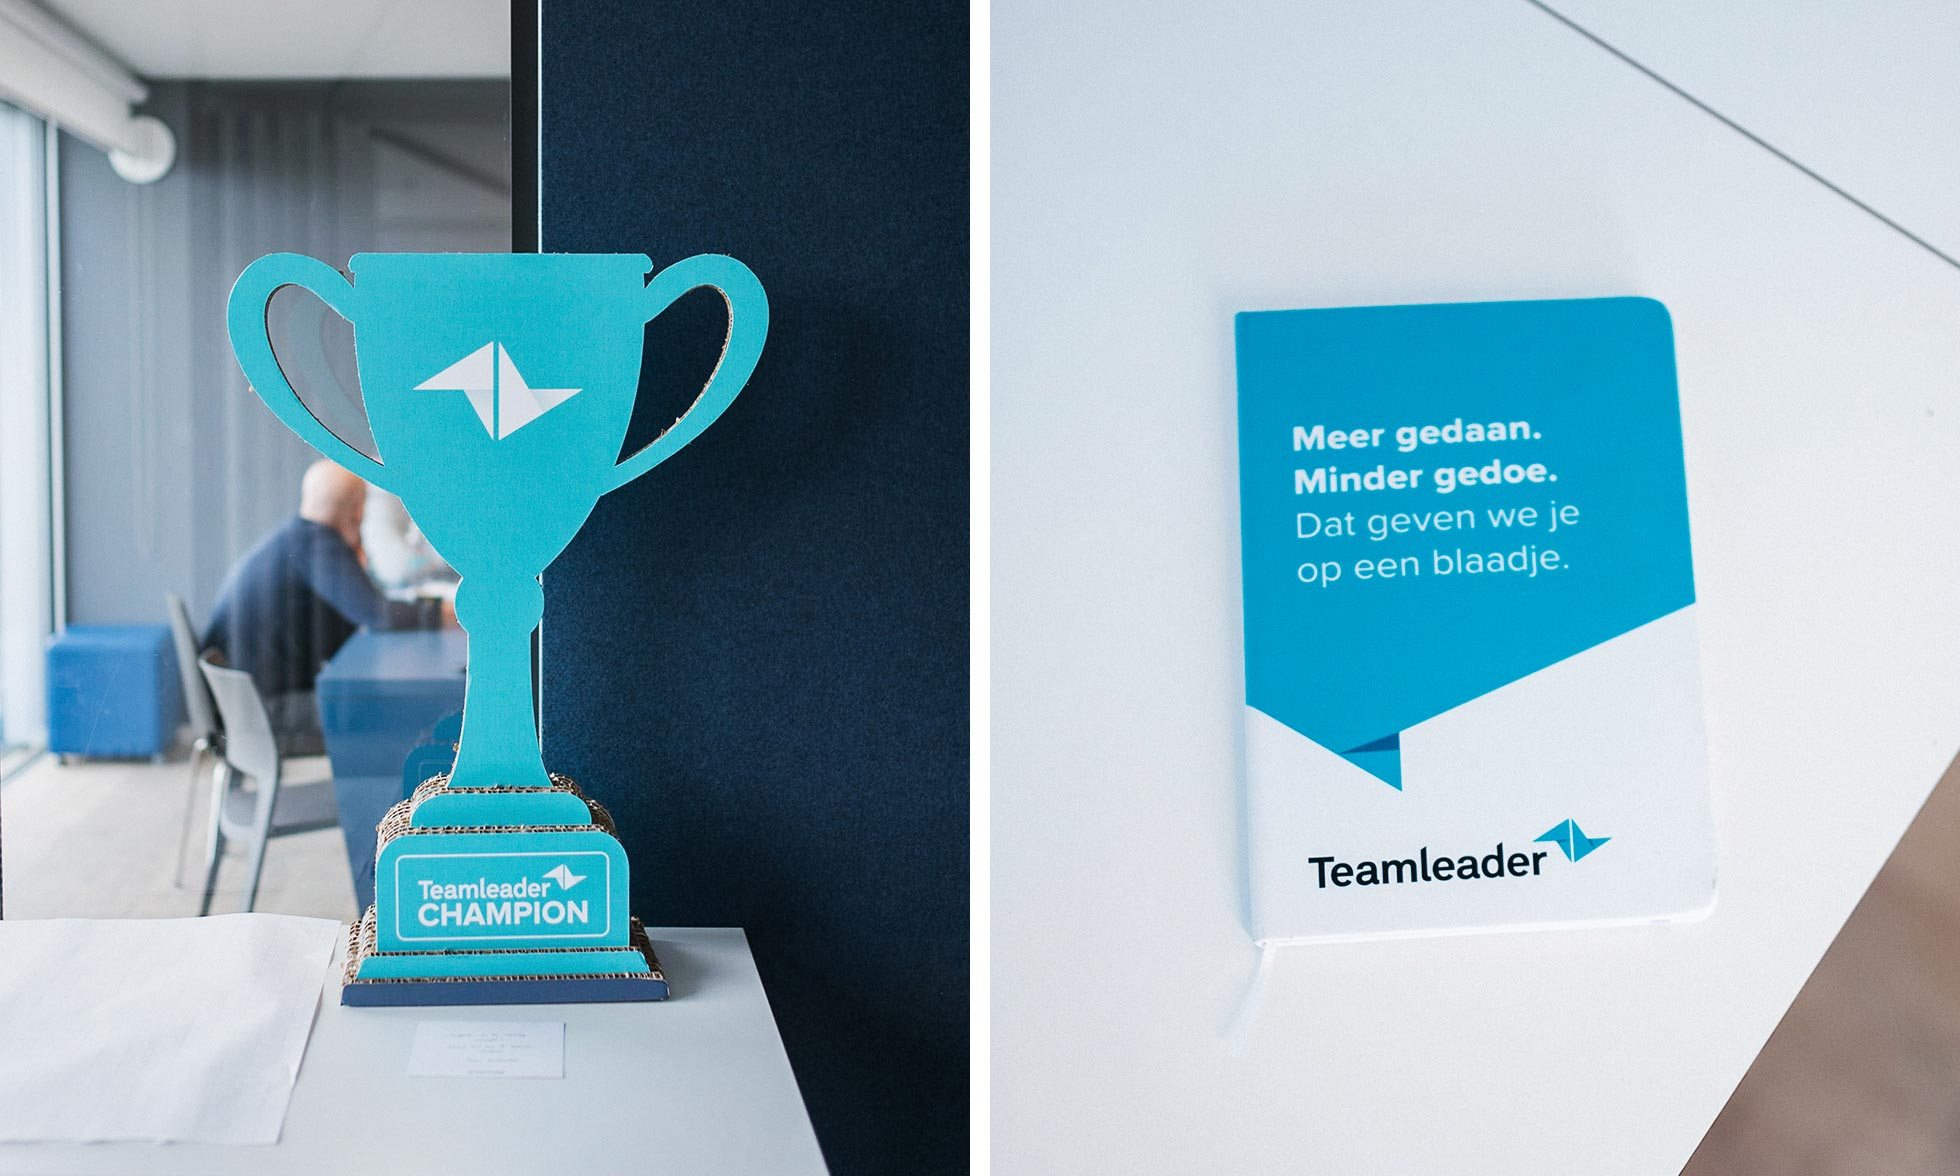 A cardboard trophy and booklet from Teamleader